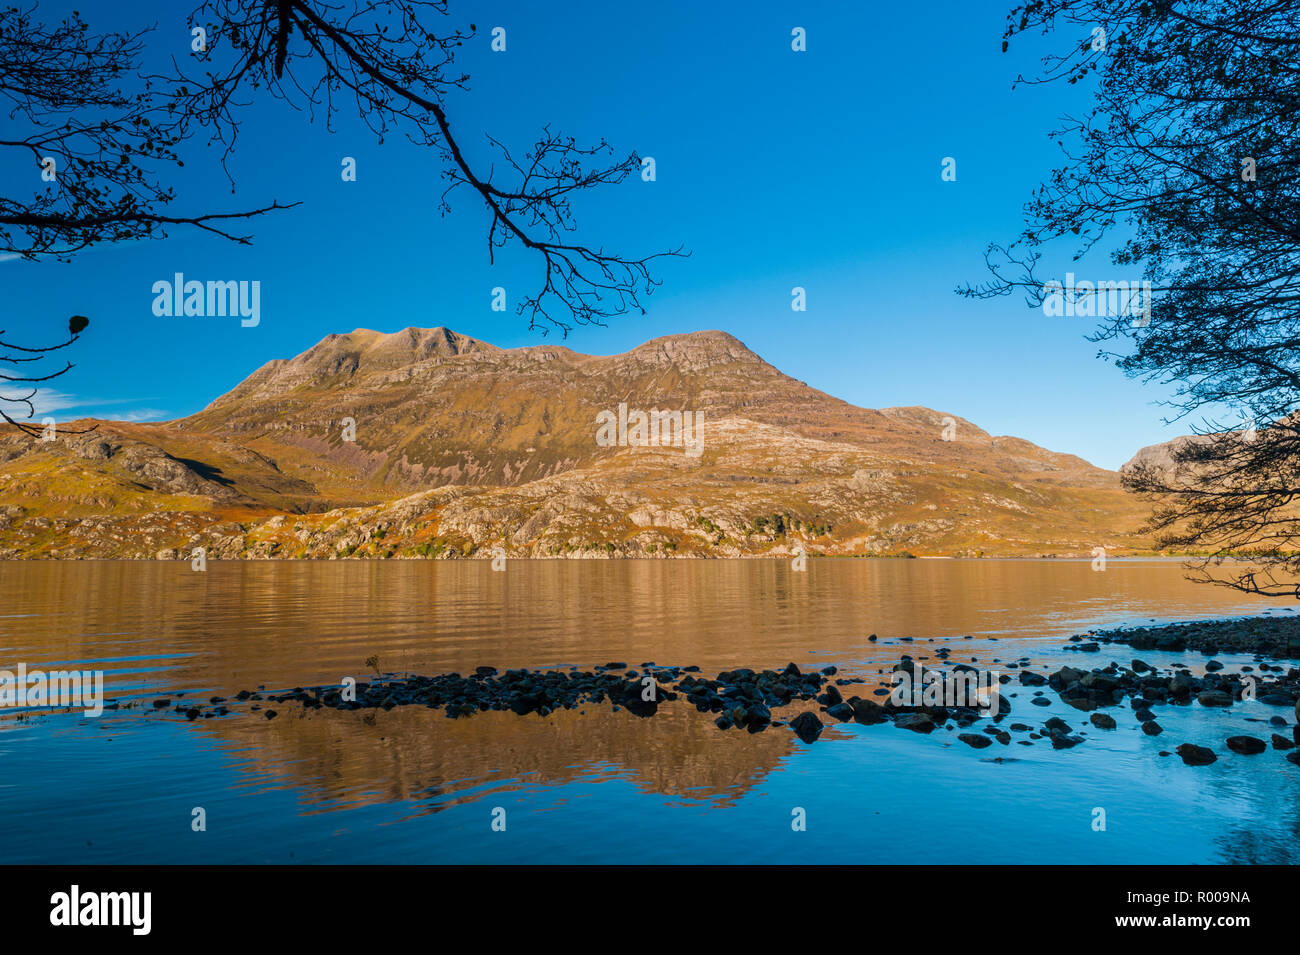 Siloch reflection in Loch Maree, Wester Ross, Scottish Highlands - Stock Image